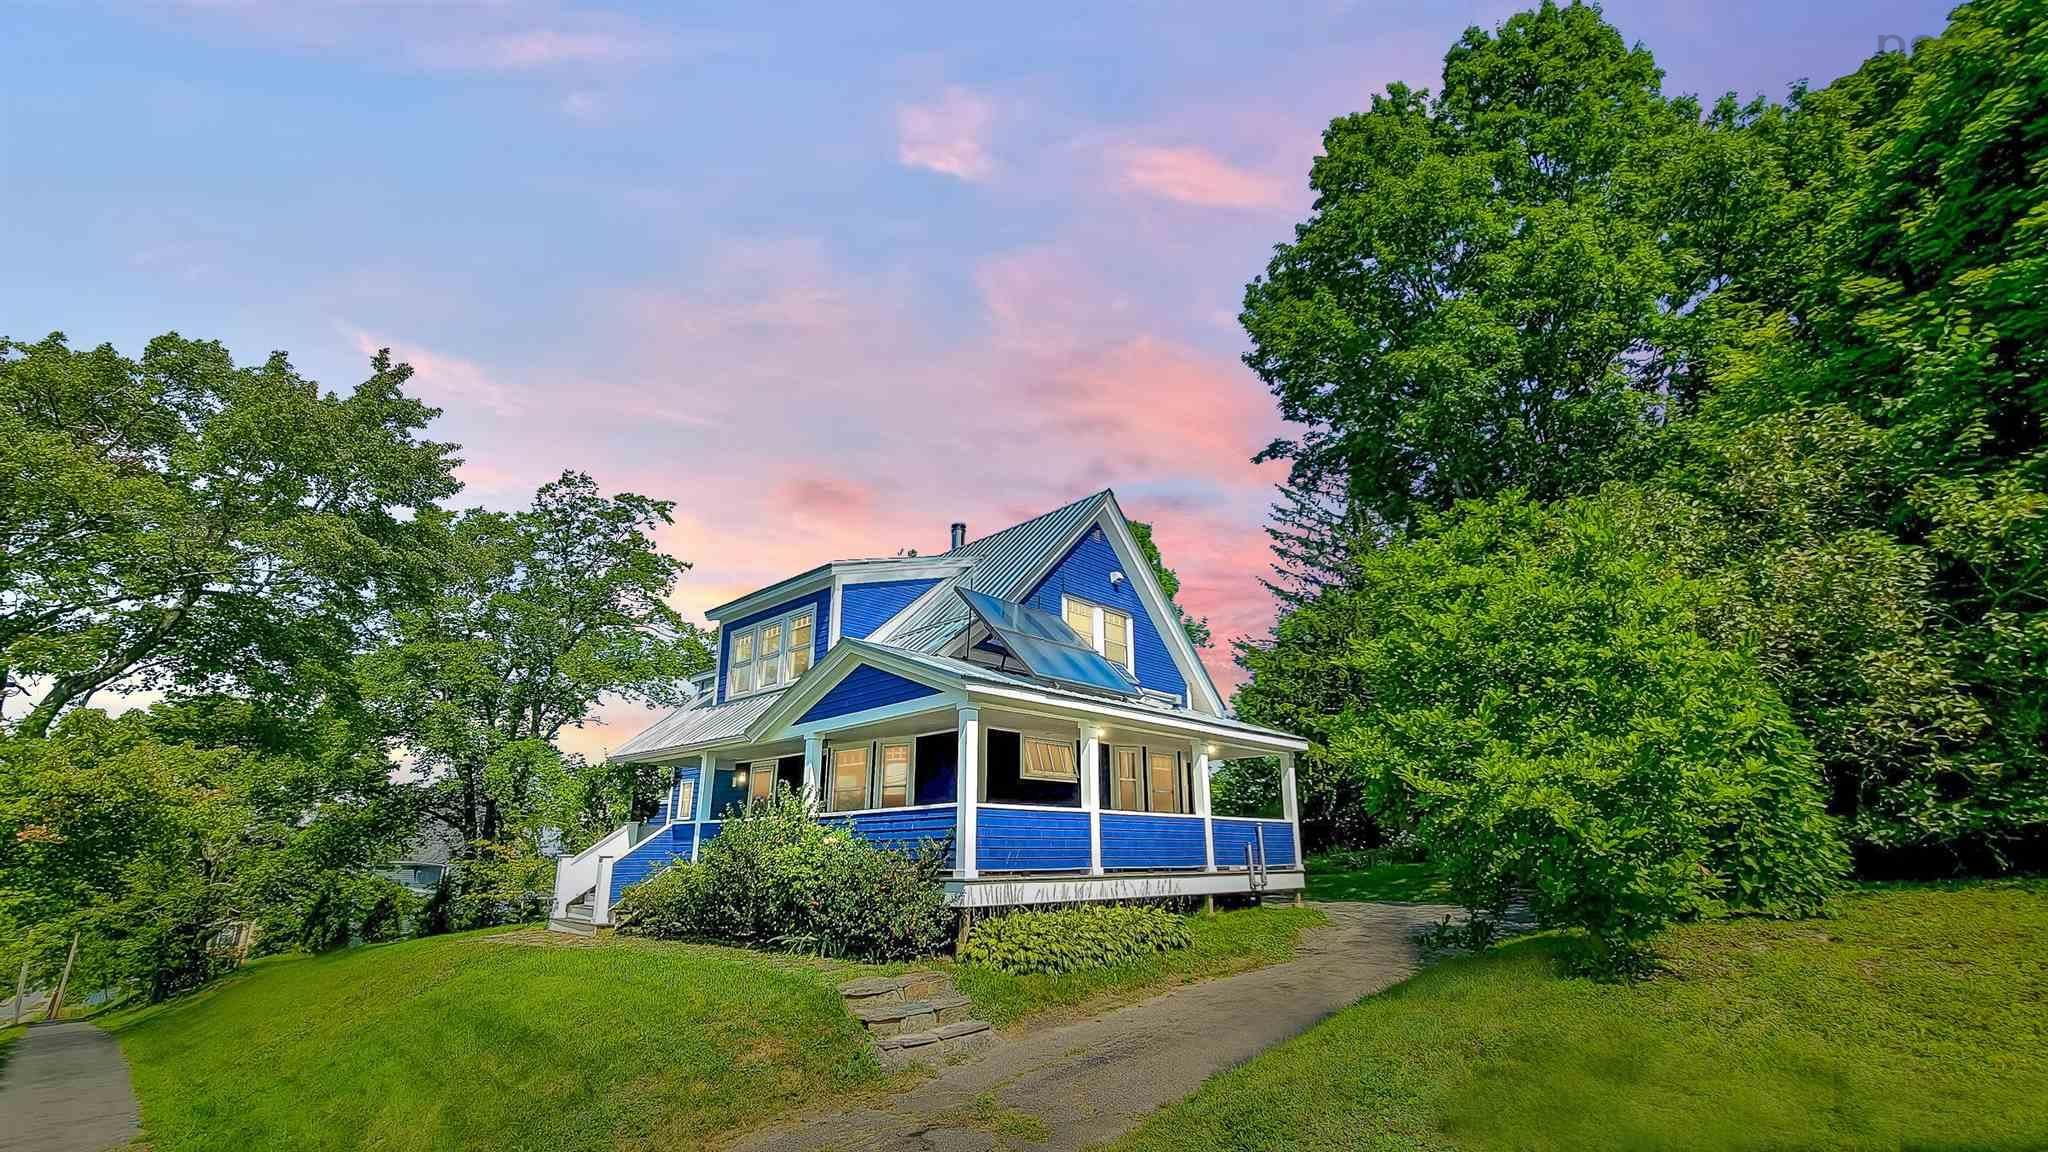 Main Photo: 29 Highland Avenue in Wolfville: 404-Kings County Residential for sale (Annapolis Valley)  : MLS®# 202122121